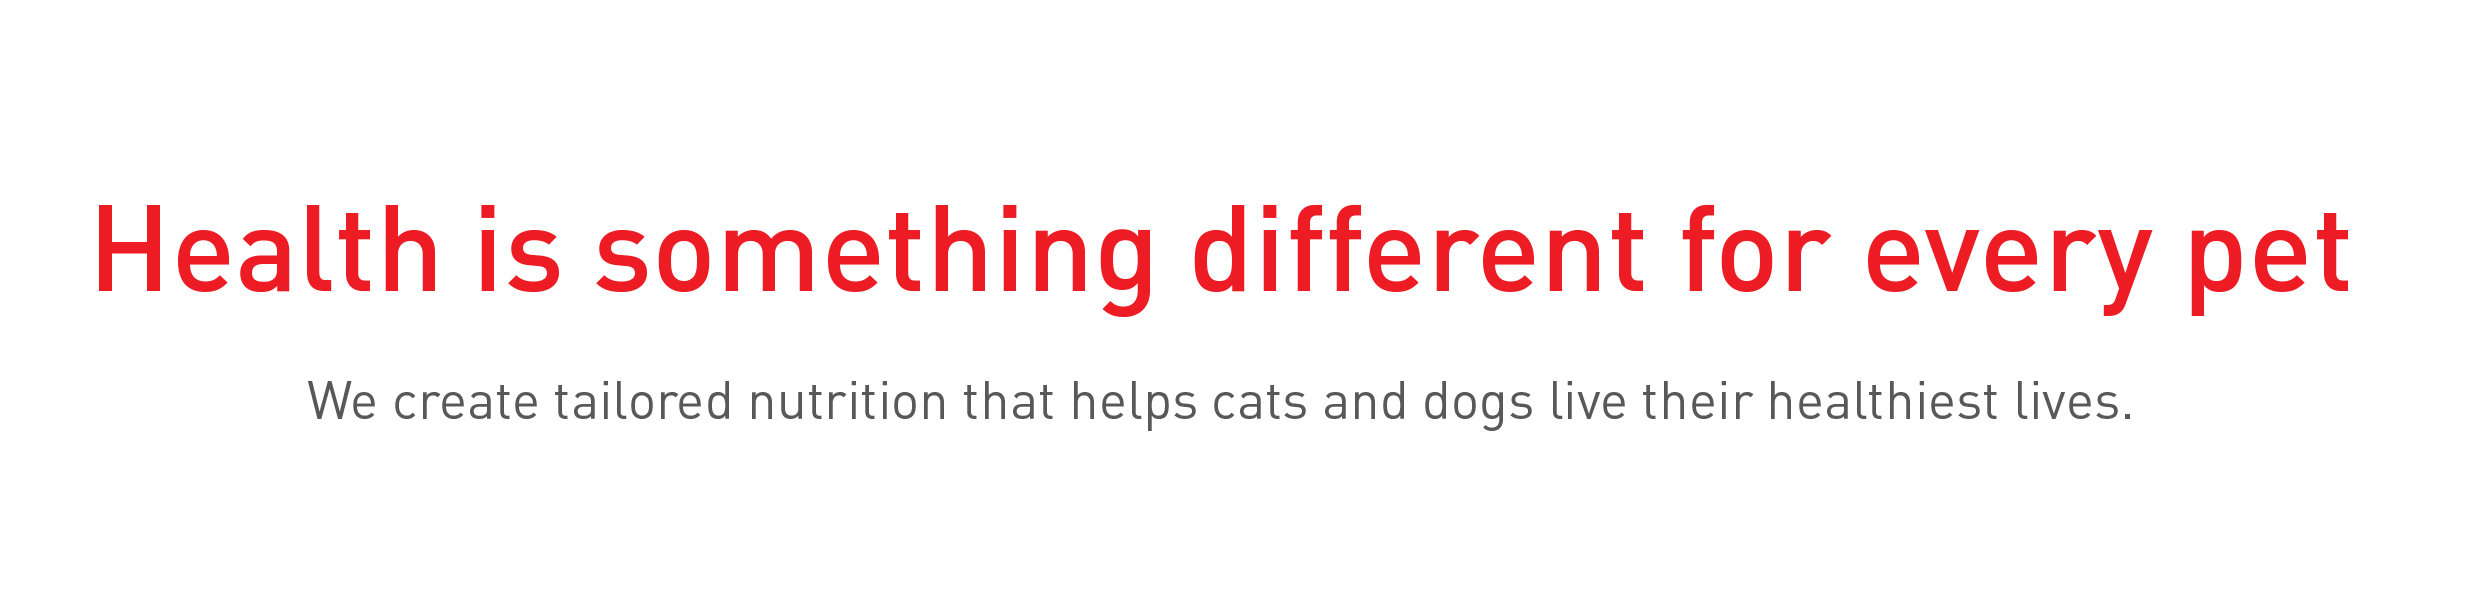 Royal Canin Taylored Nutrition